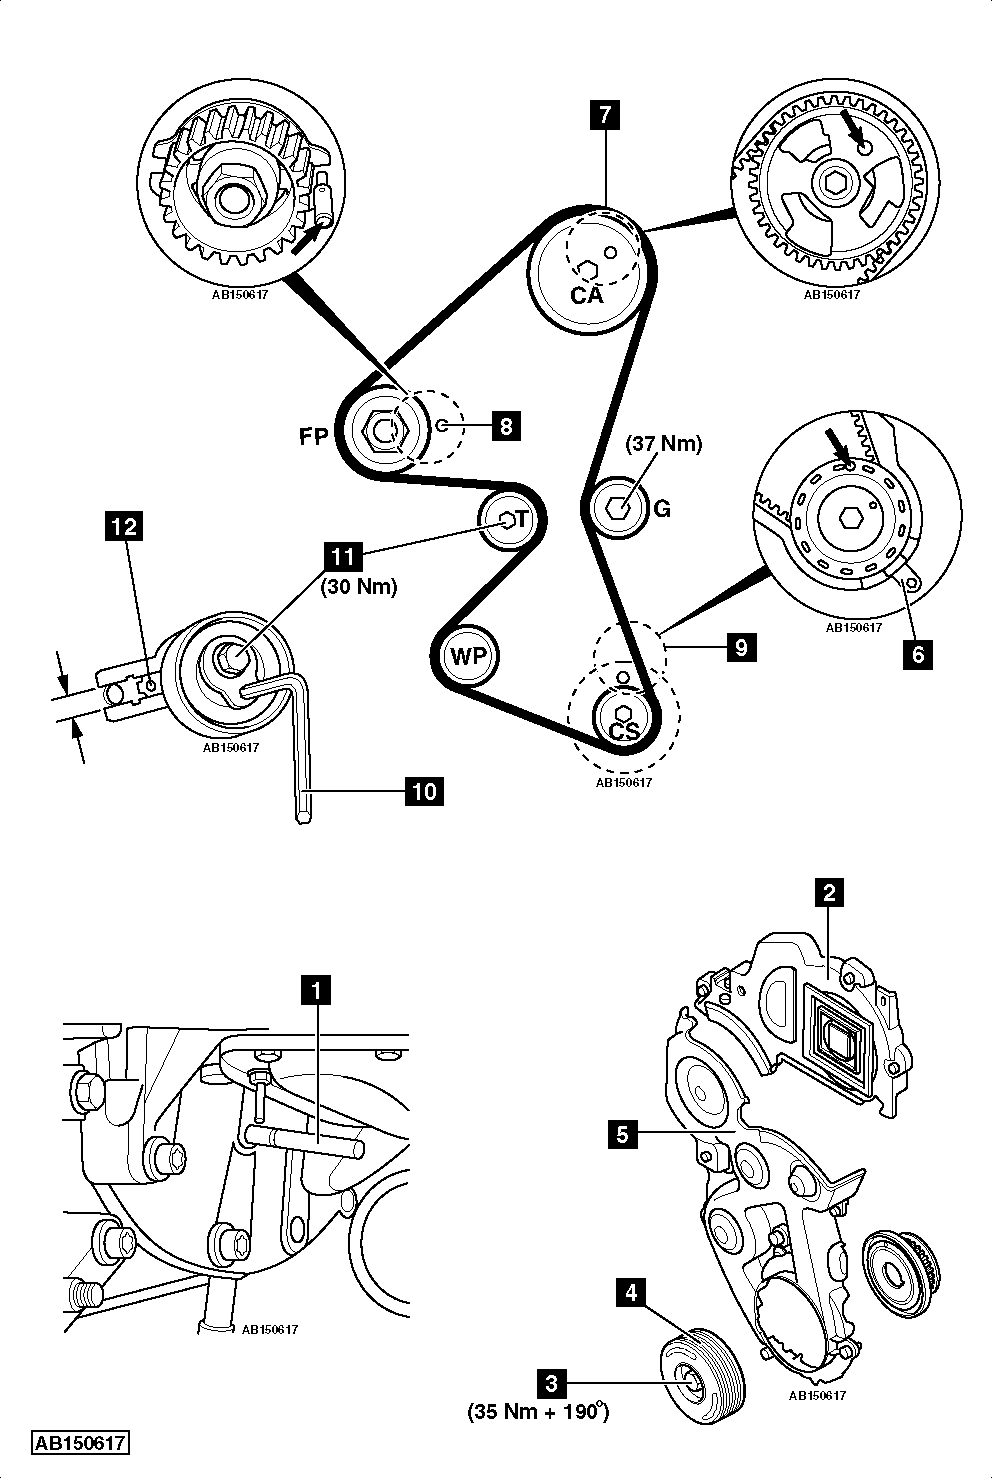 96 Mazda Mx 6 Engine Diagram on mazda 626 1996 belt